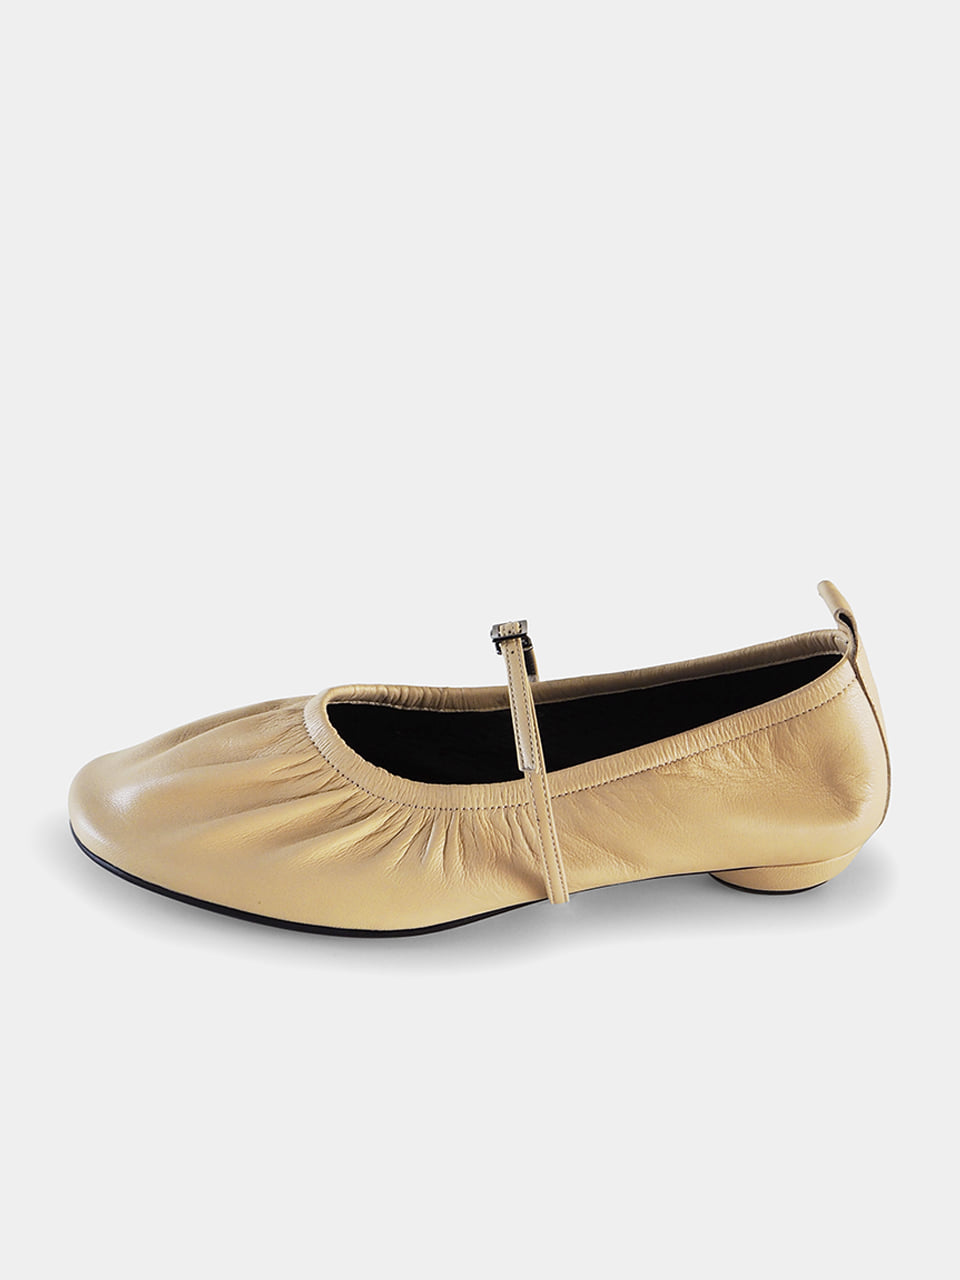 [Sold Out] Mrc061 Shirring Flat Shoes (Butter Yellow)